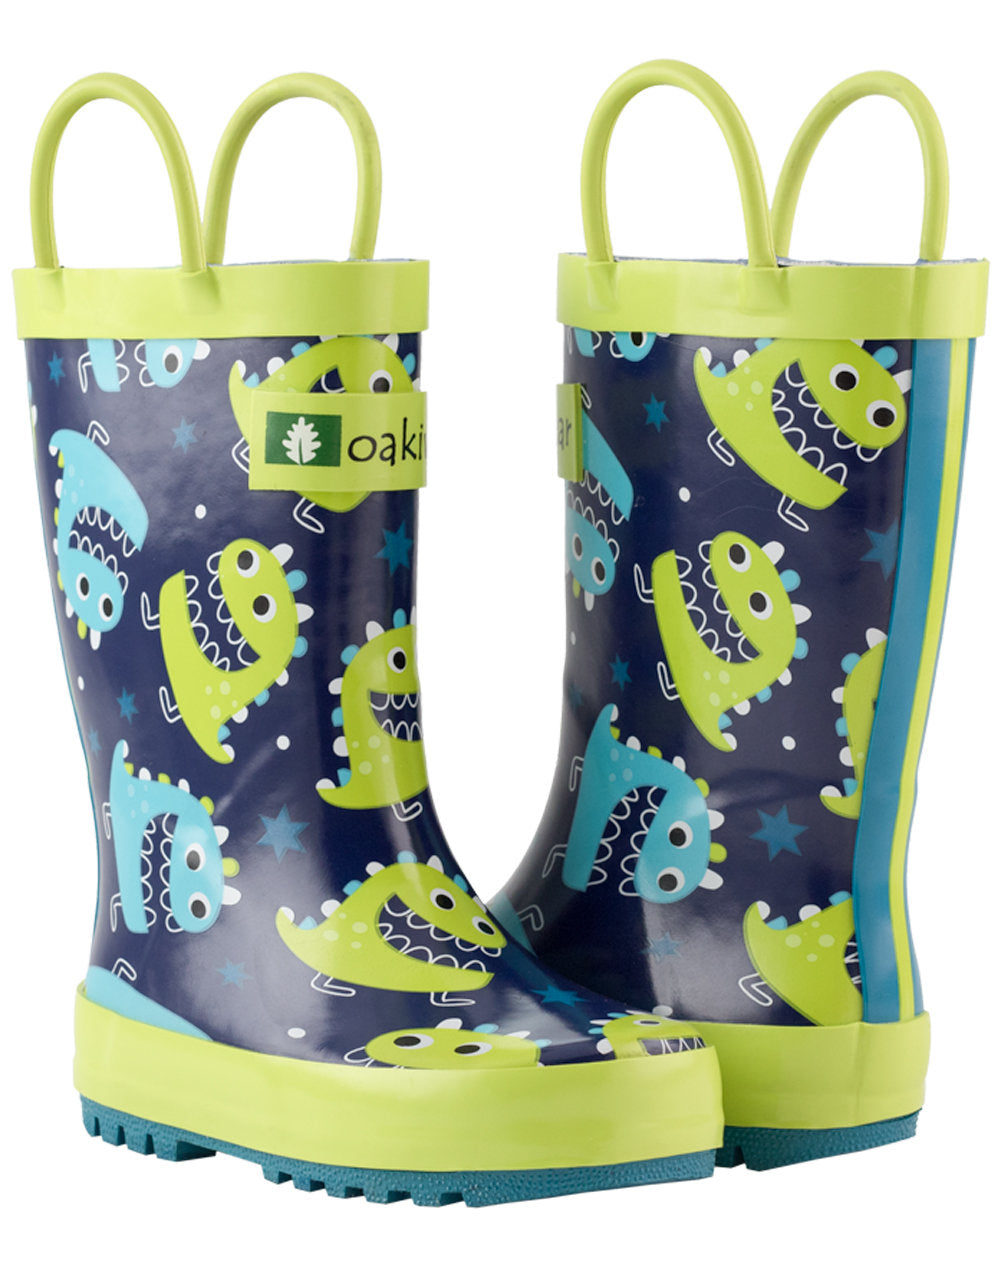 Green & Blue Monsters Loop Handle Rubber Rain Boots